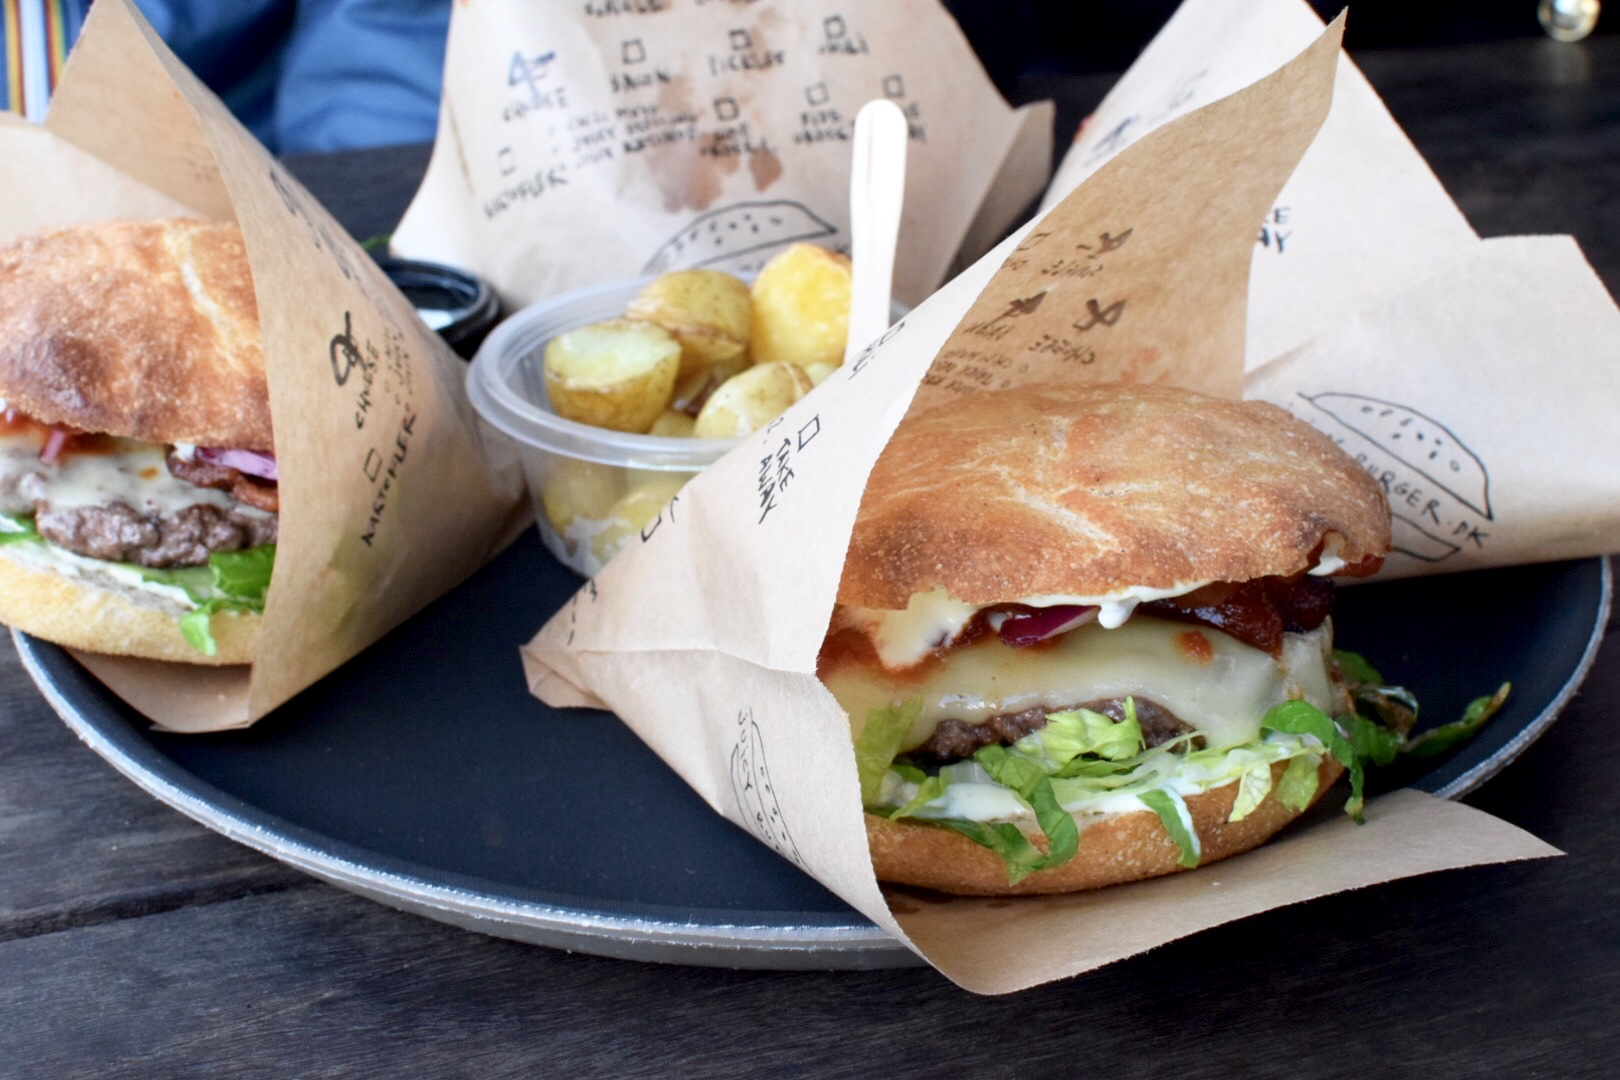 Juicy Burger | Come to Copenhagen with Nonsolofood